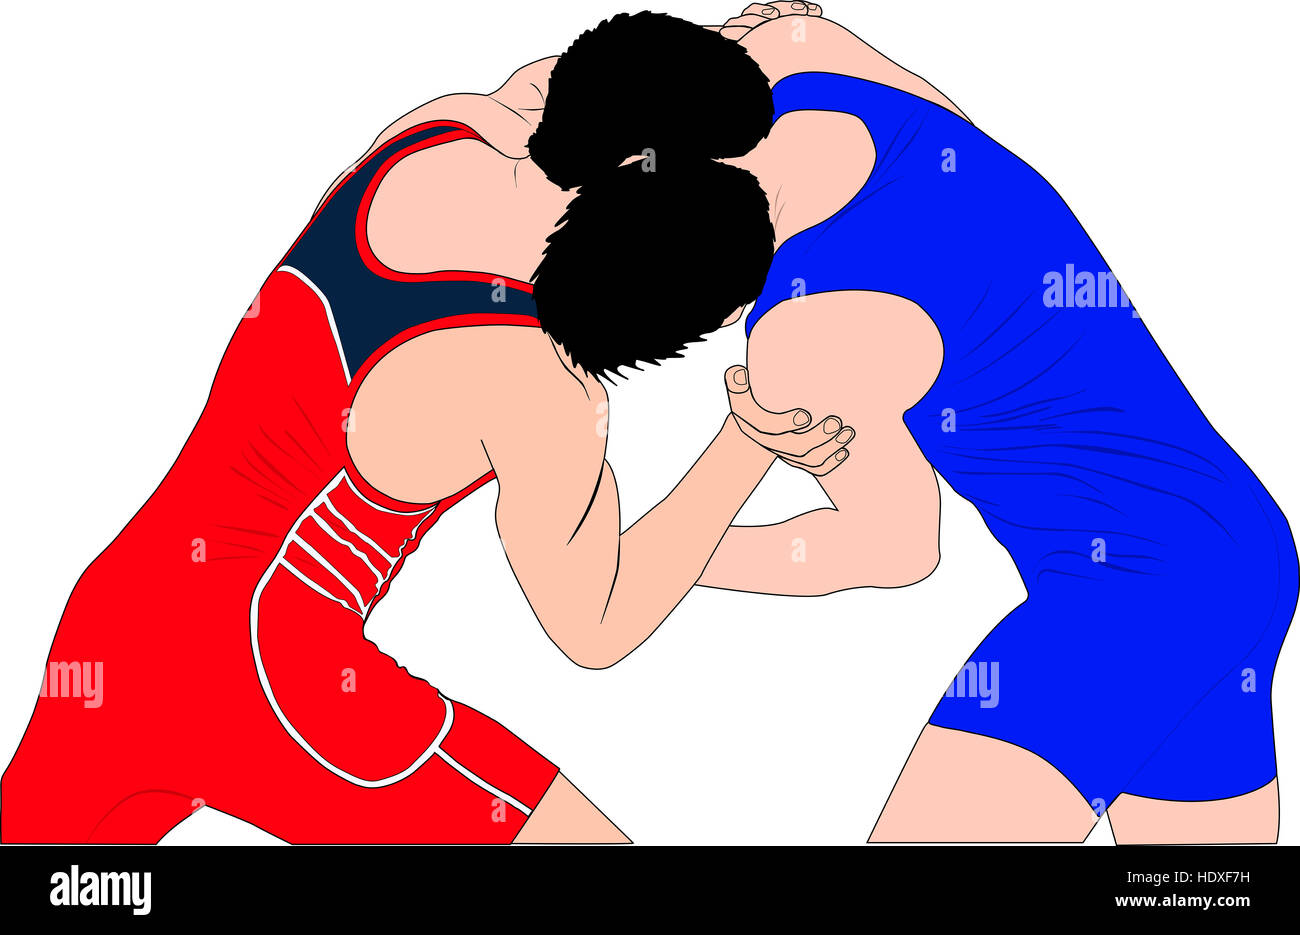 Two Men Wrestlers In Greco Roman Wrestling At Competitions Color Stock Photo Alamy